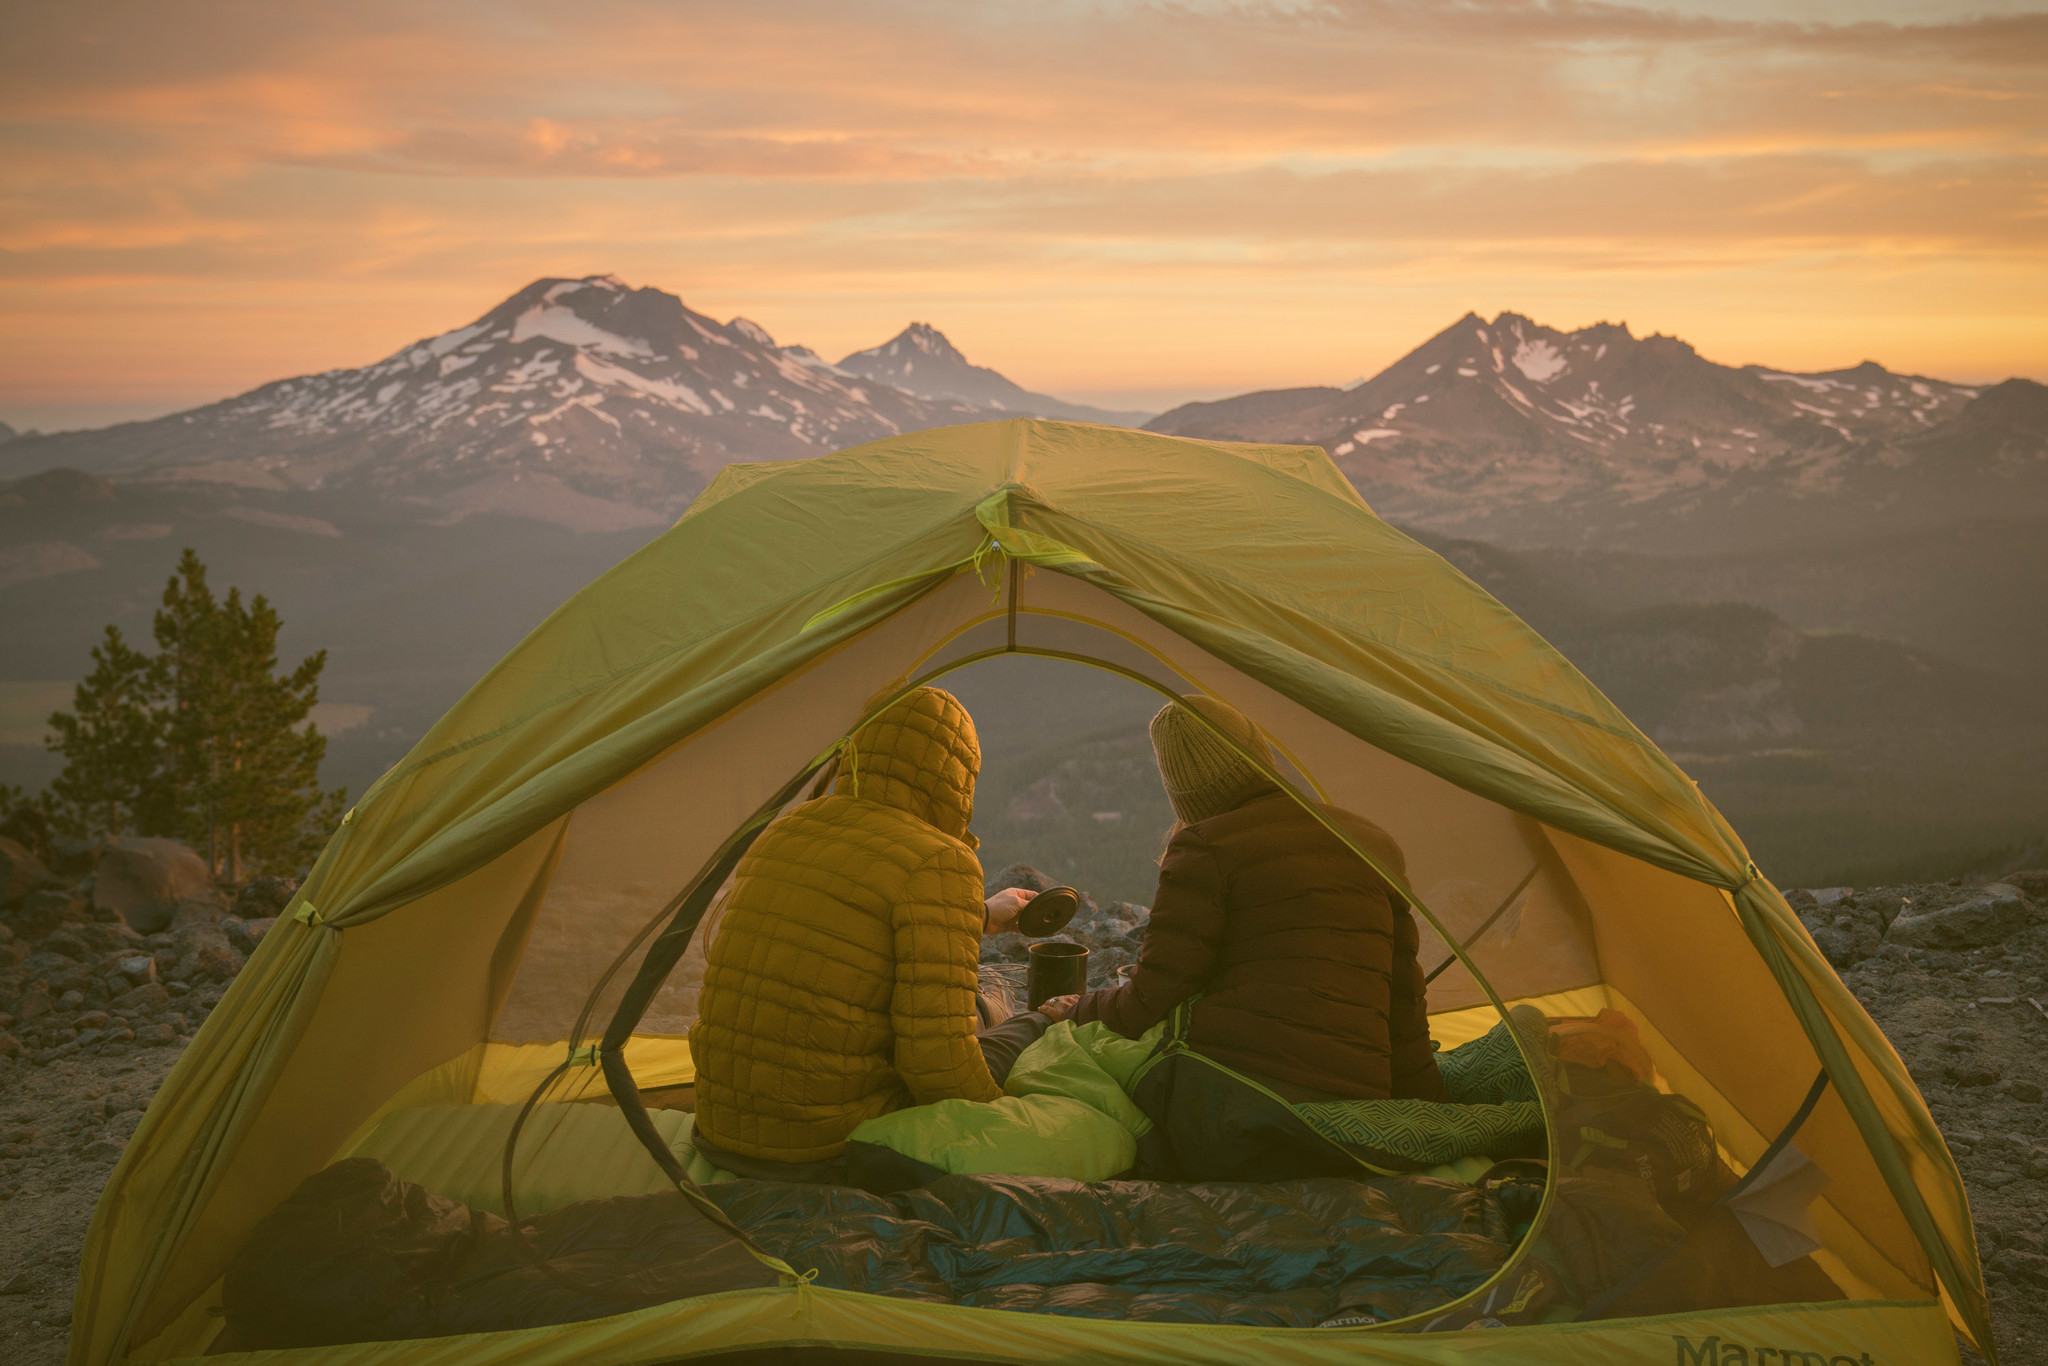 Marmot Tents and Camping